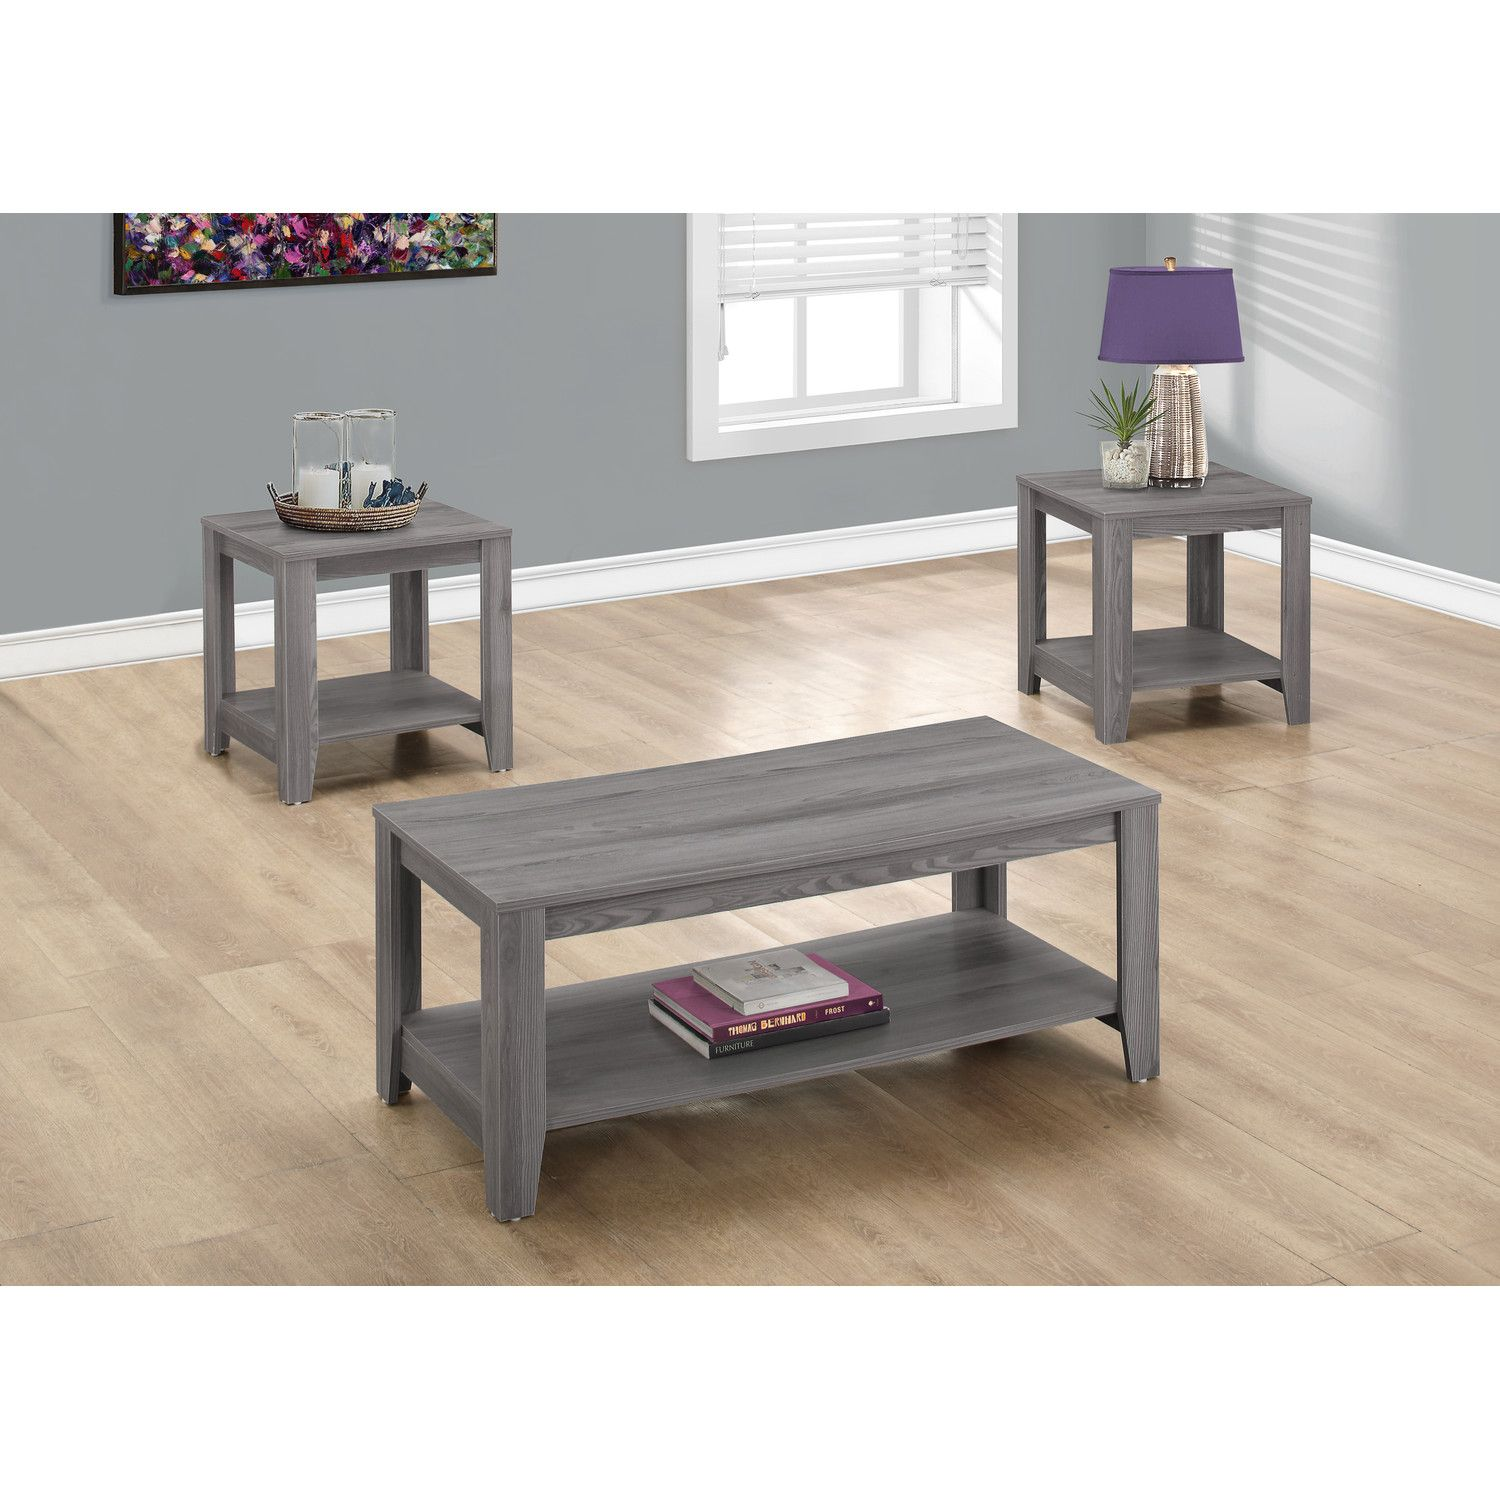 Shop Wayfair for Coffee Table Sets to match every style and bud